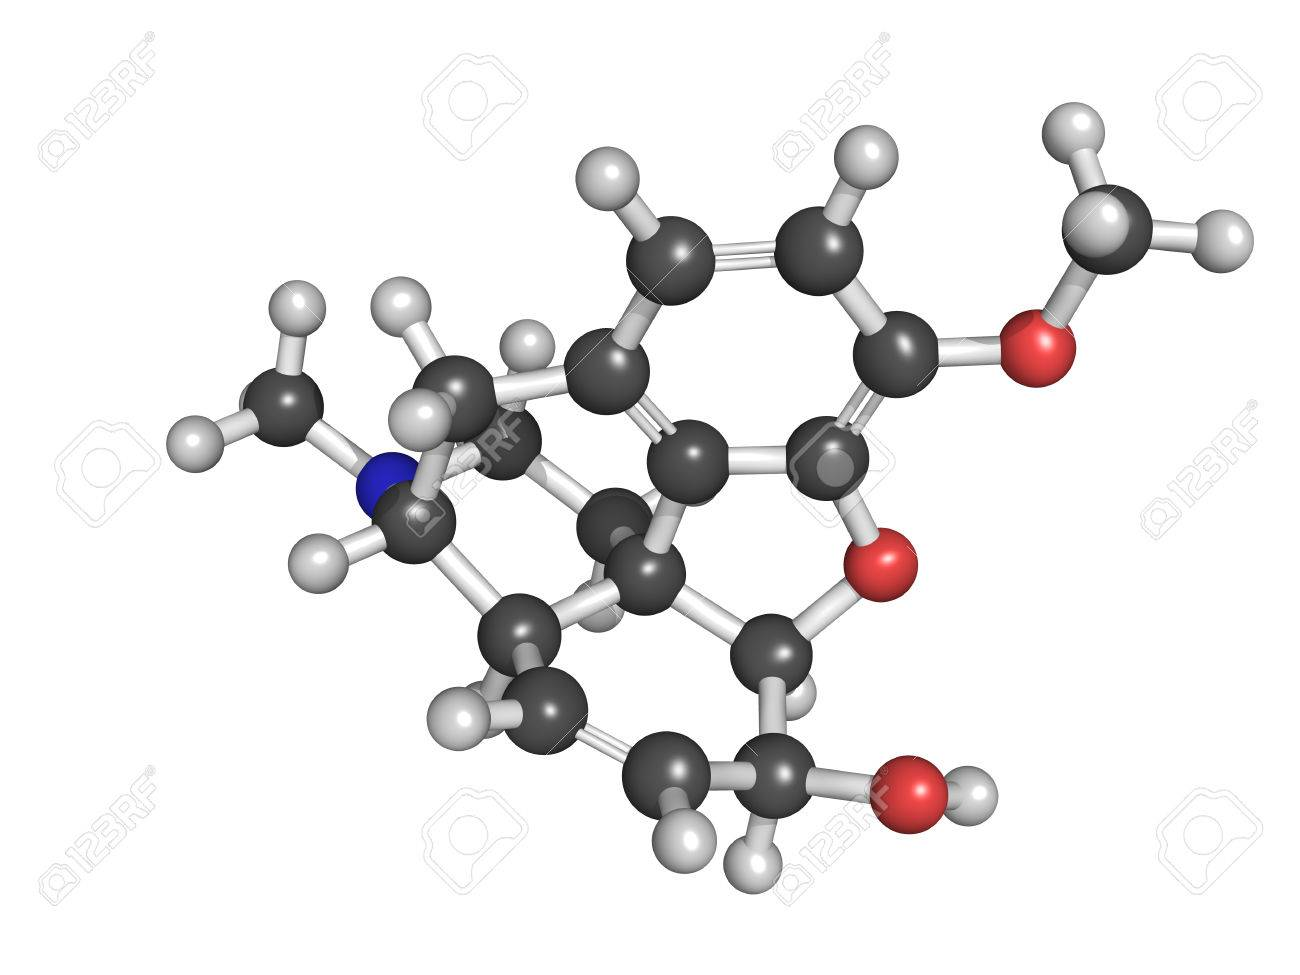 Codeine pain and cough relief drug, chemical structure Stock Photo - 22944345